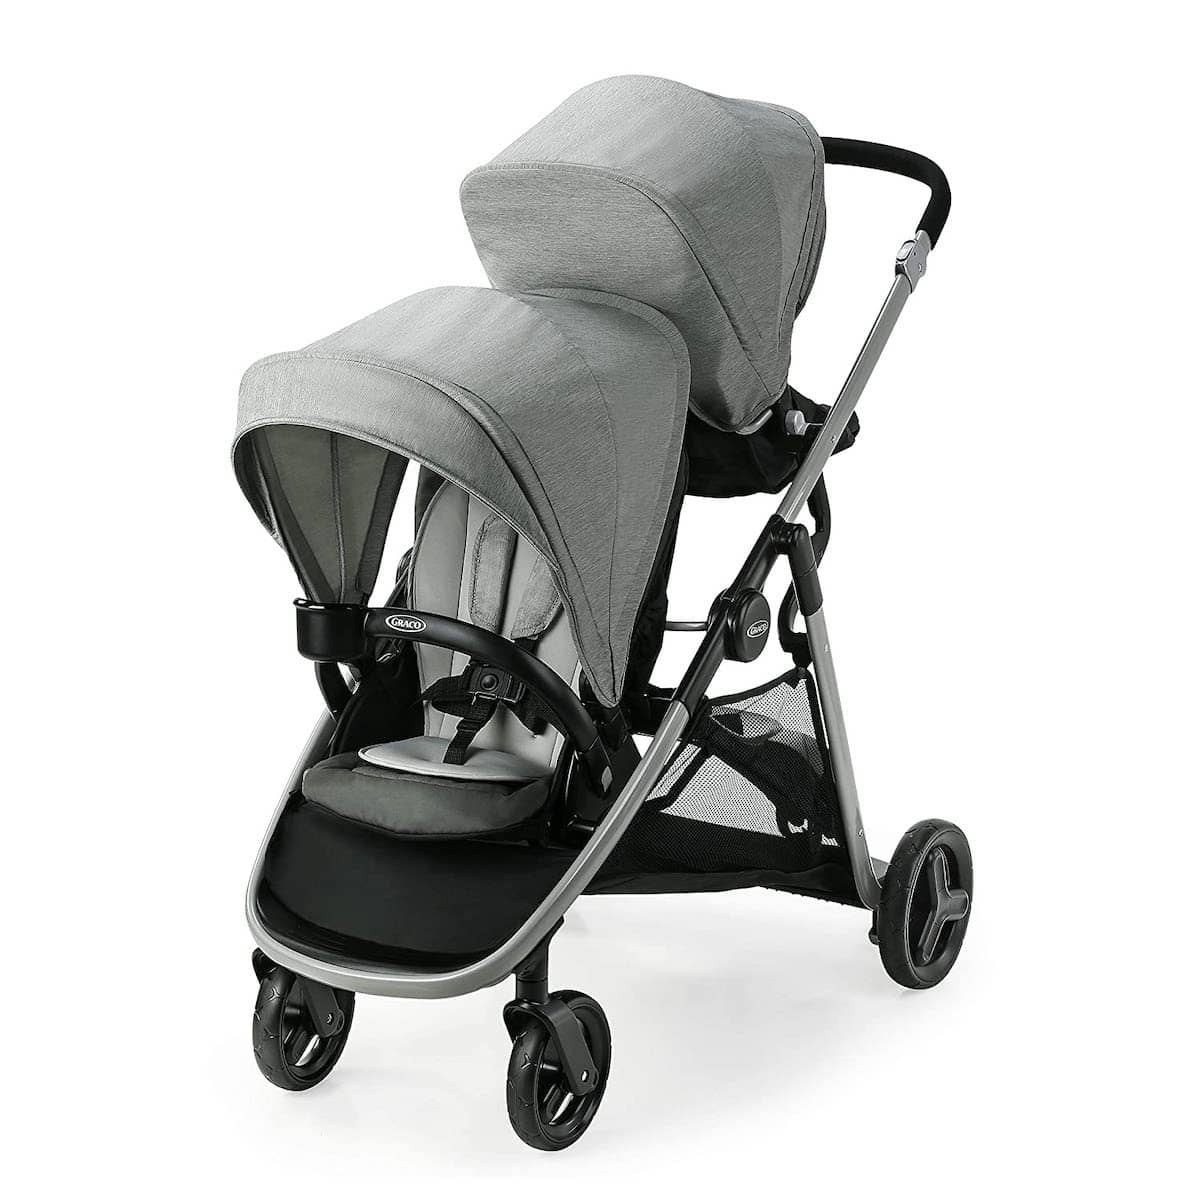 Twins & Toddlers-Graco Ready2grow Lx